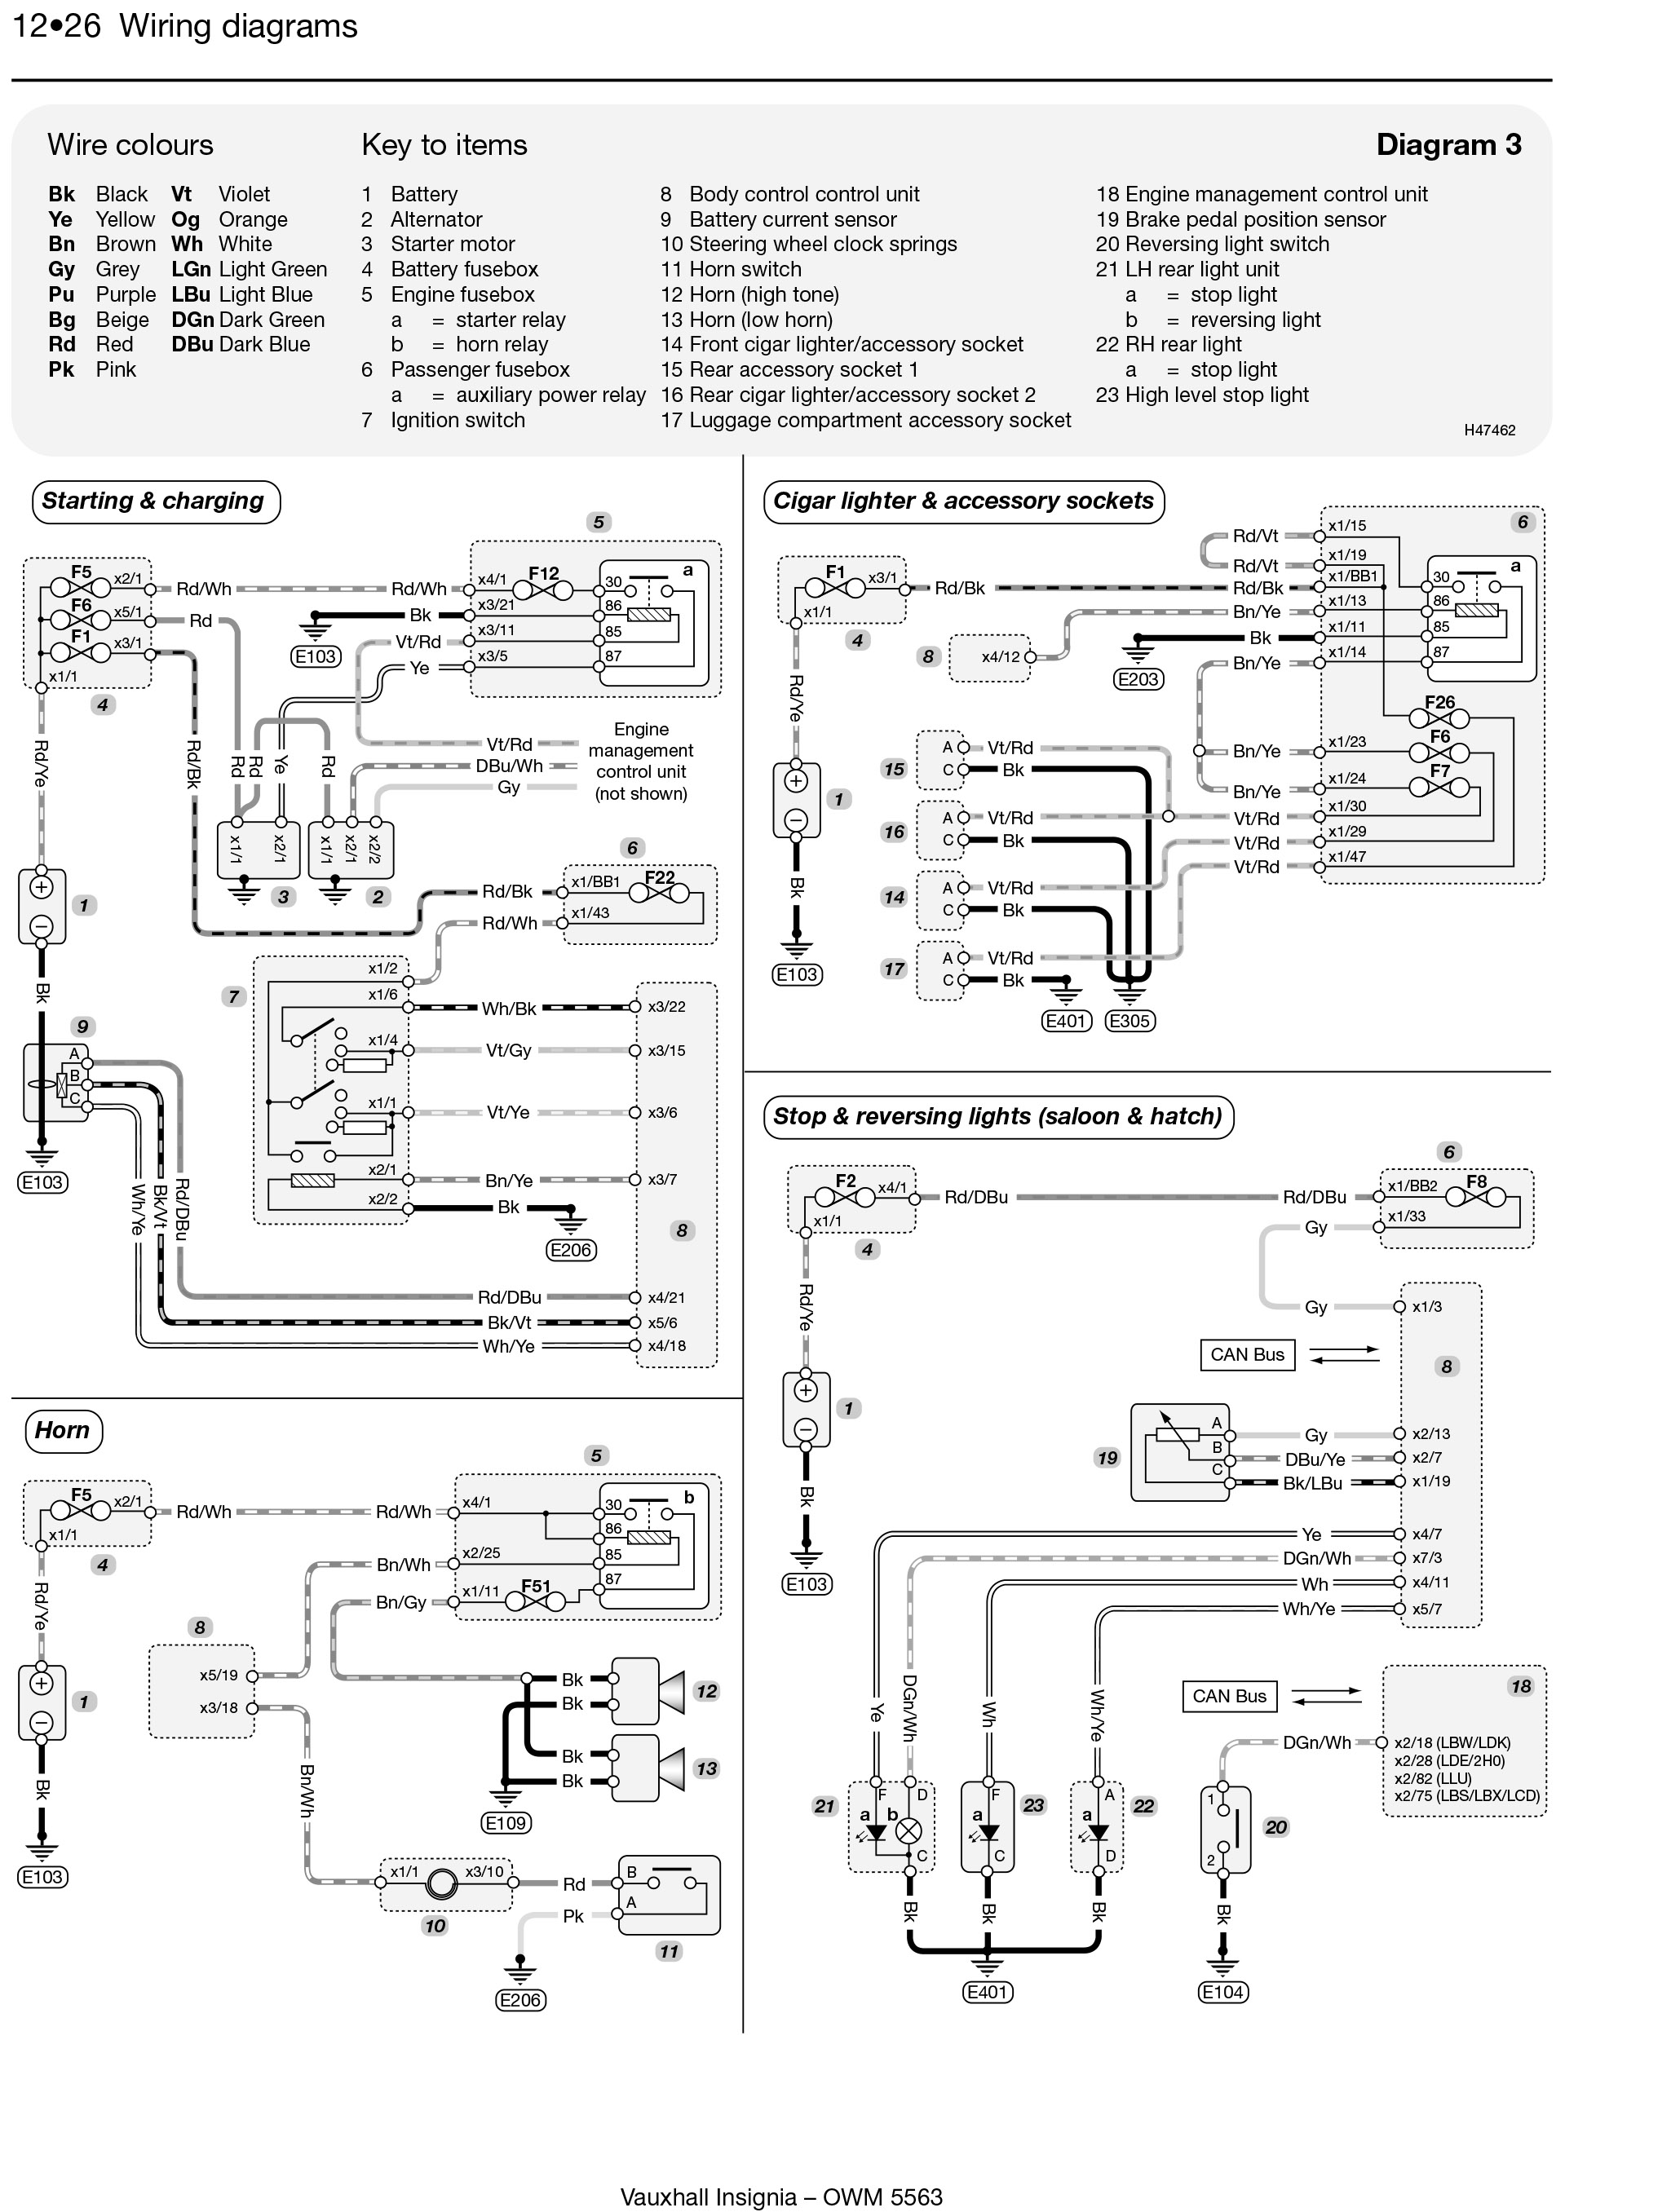 Wiring Diagram Vauxhall Vectra B Library Opel Astra Engine Insignia Haynes Publishing Rh Com Rear Light